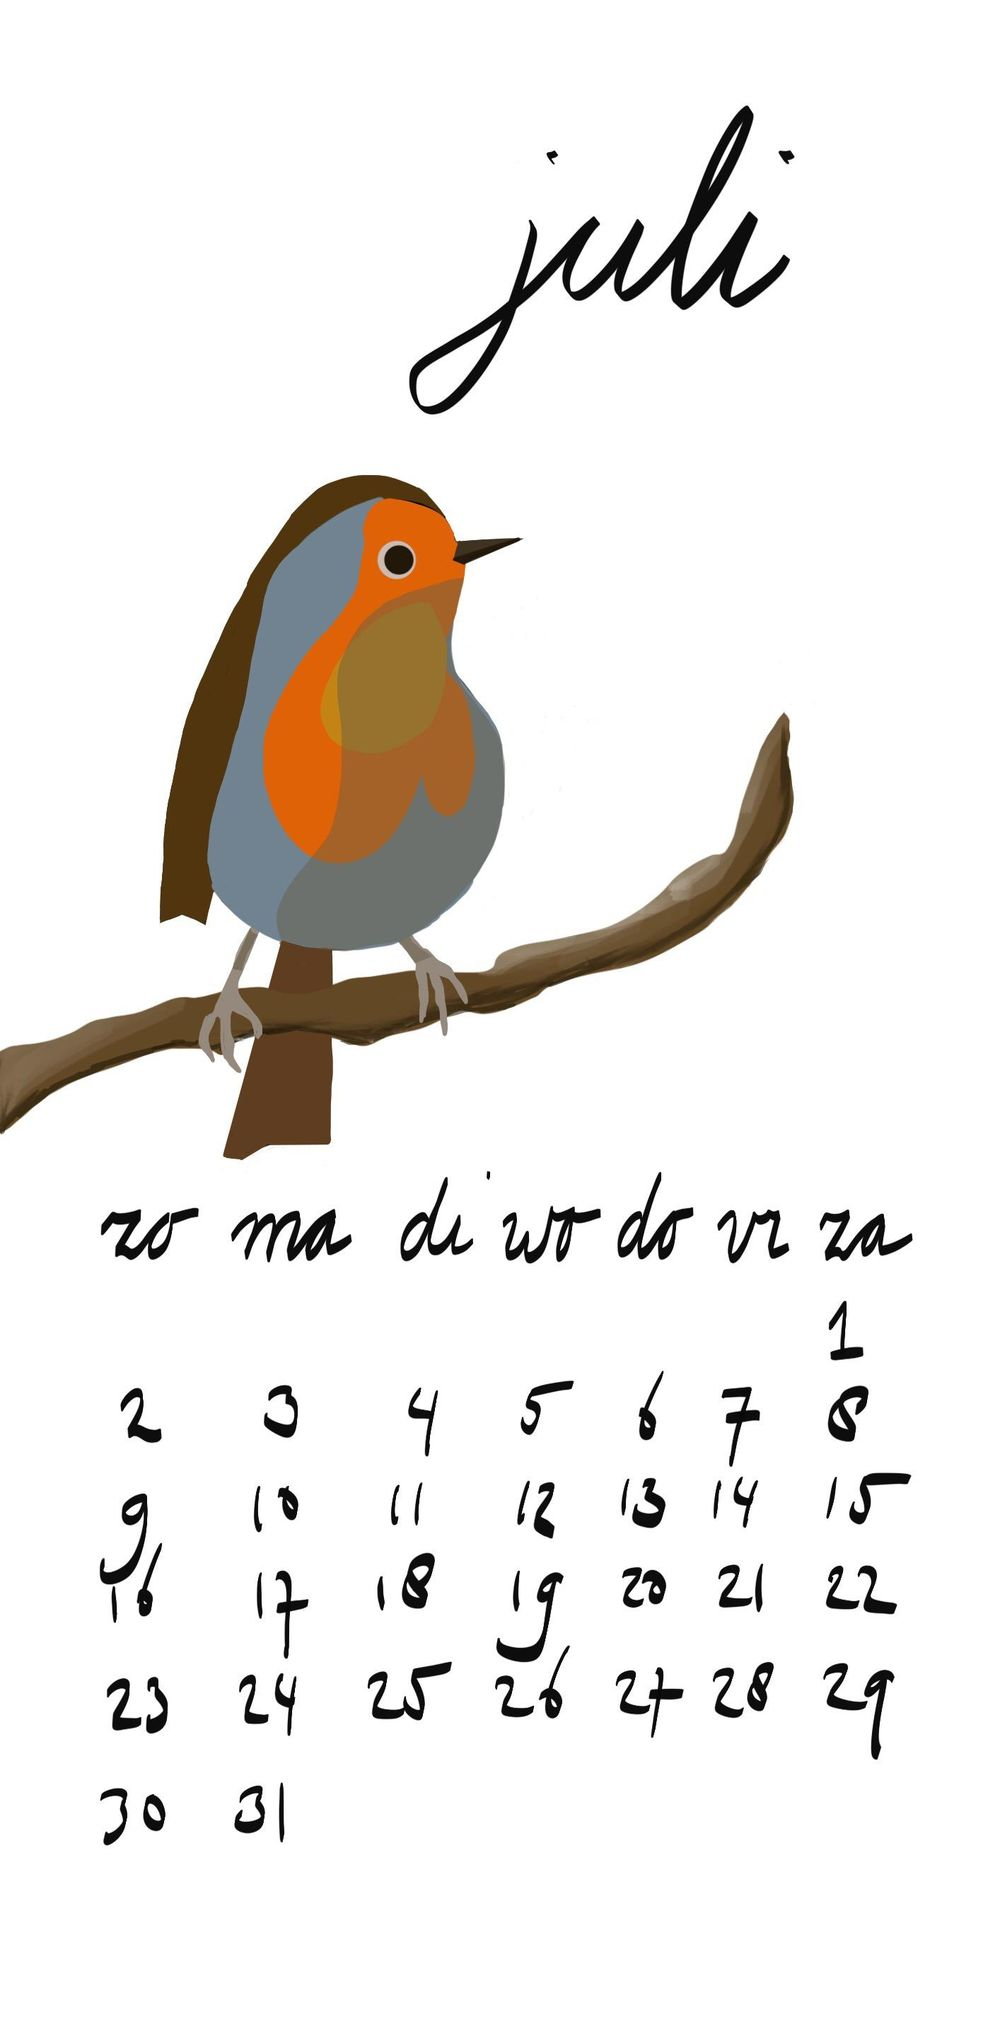 Robin in juli - image 1 - student project